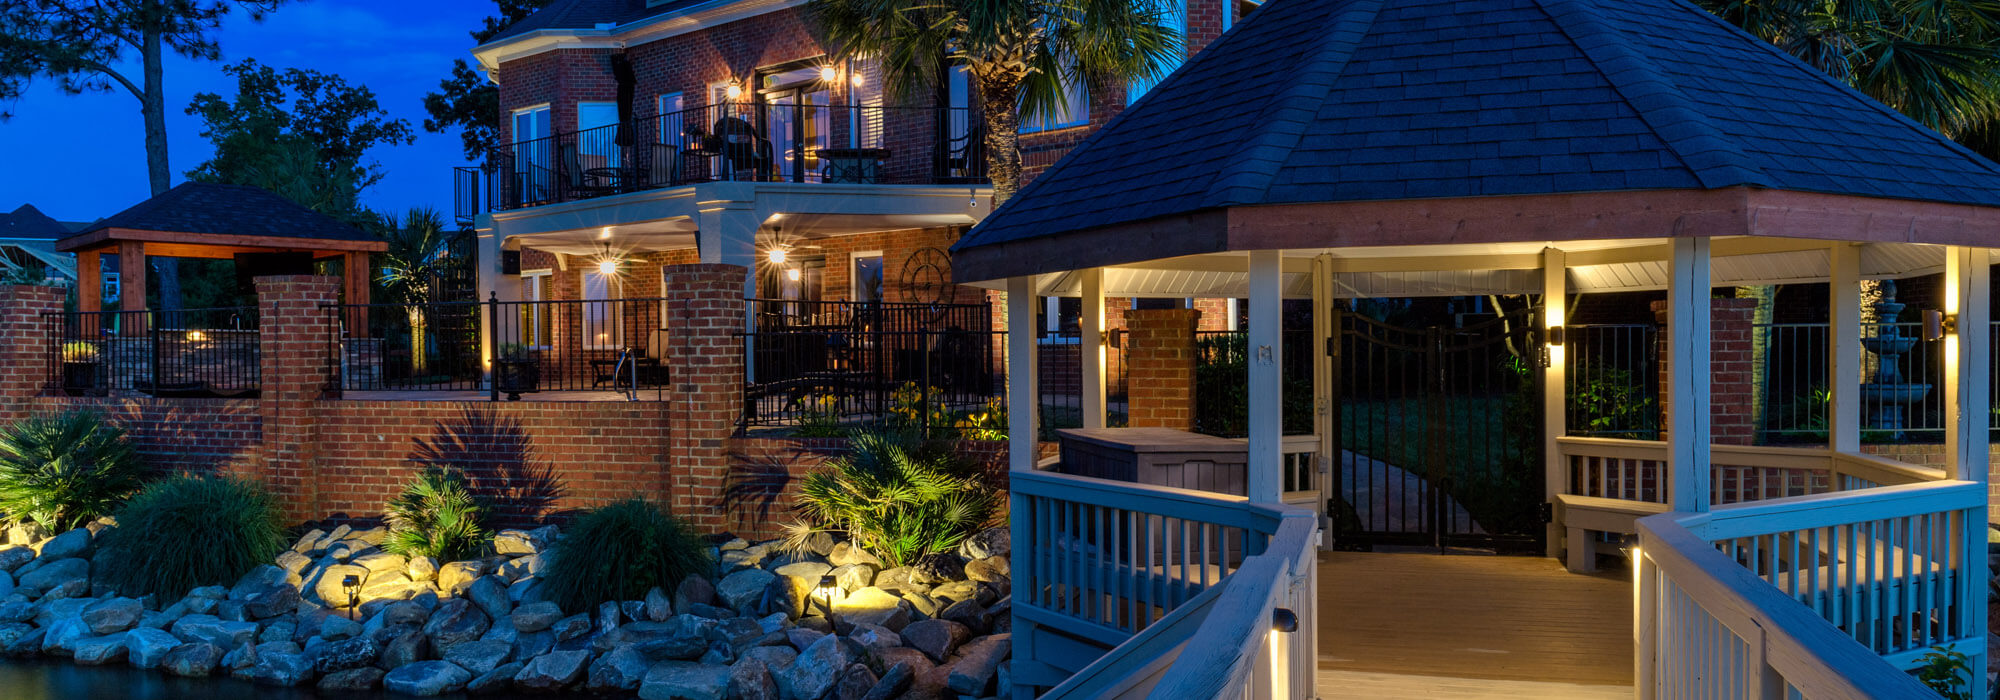 Deck and Gazebo lighting